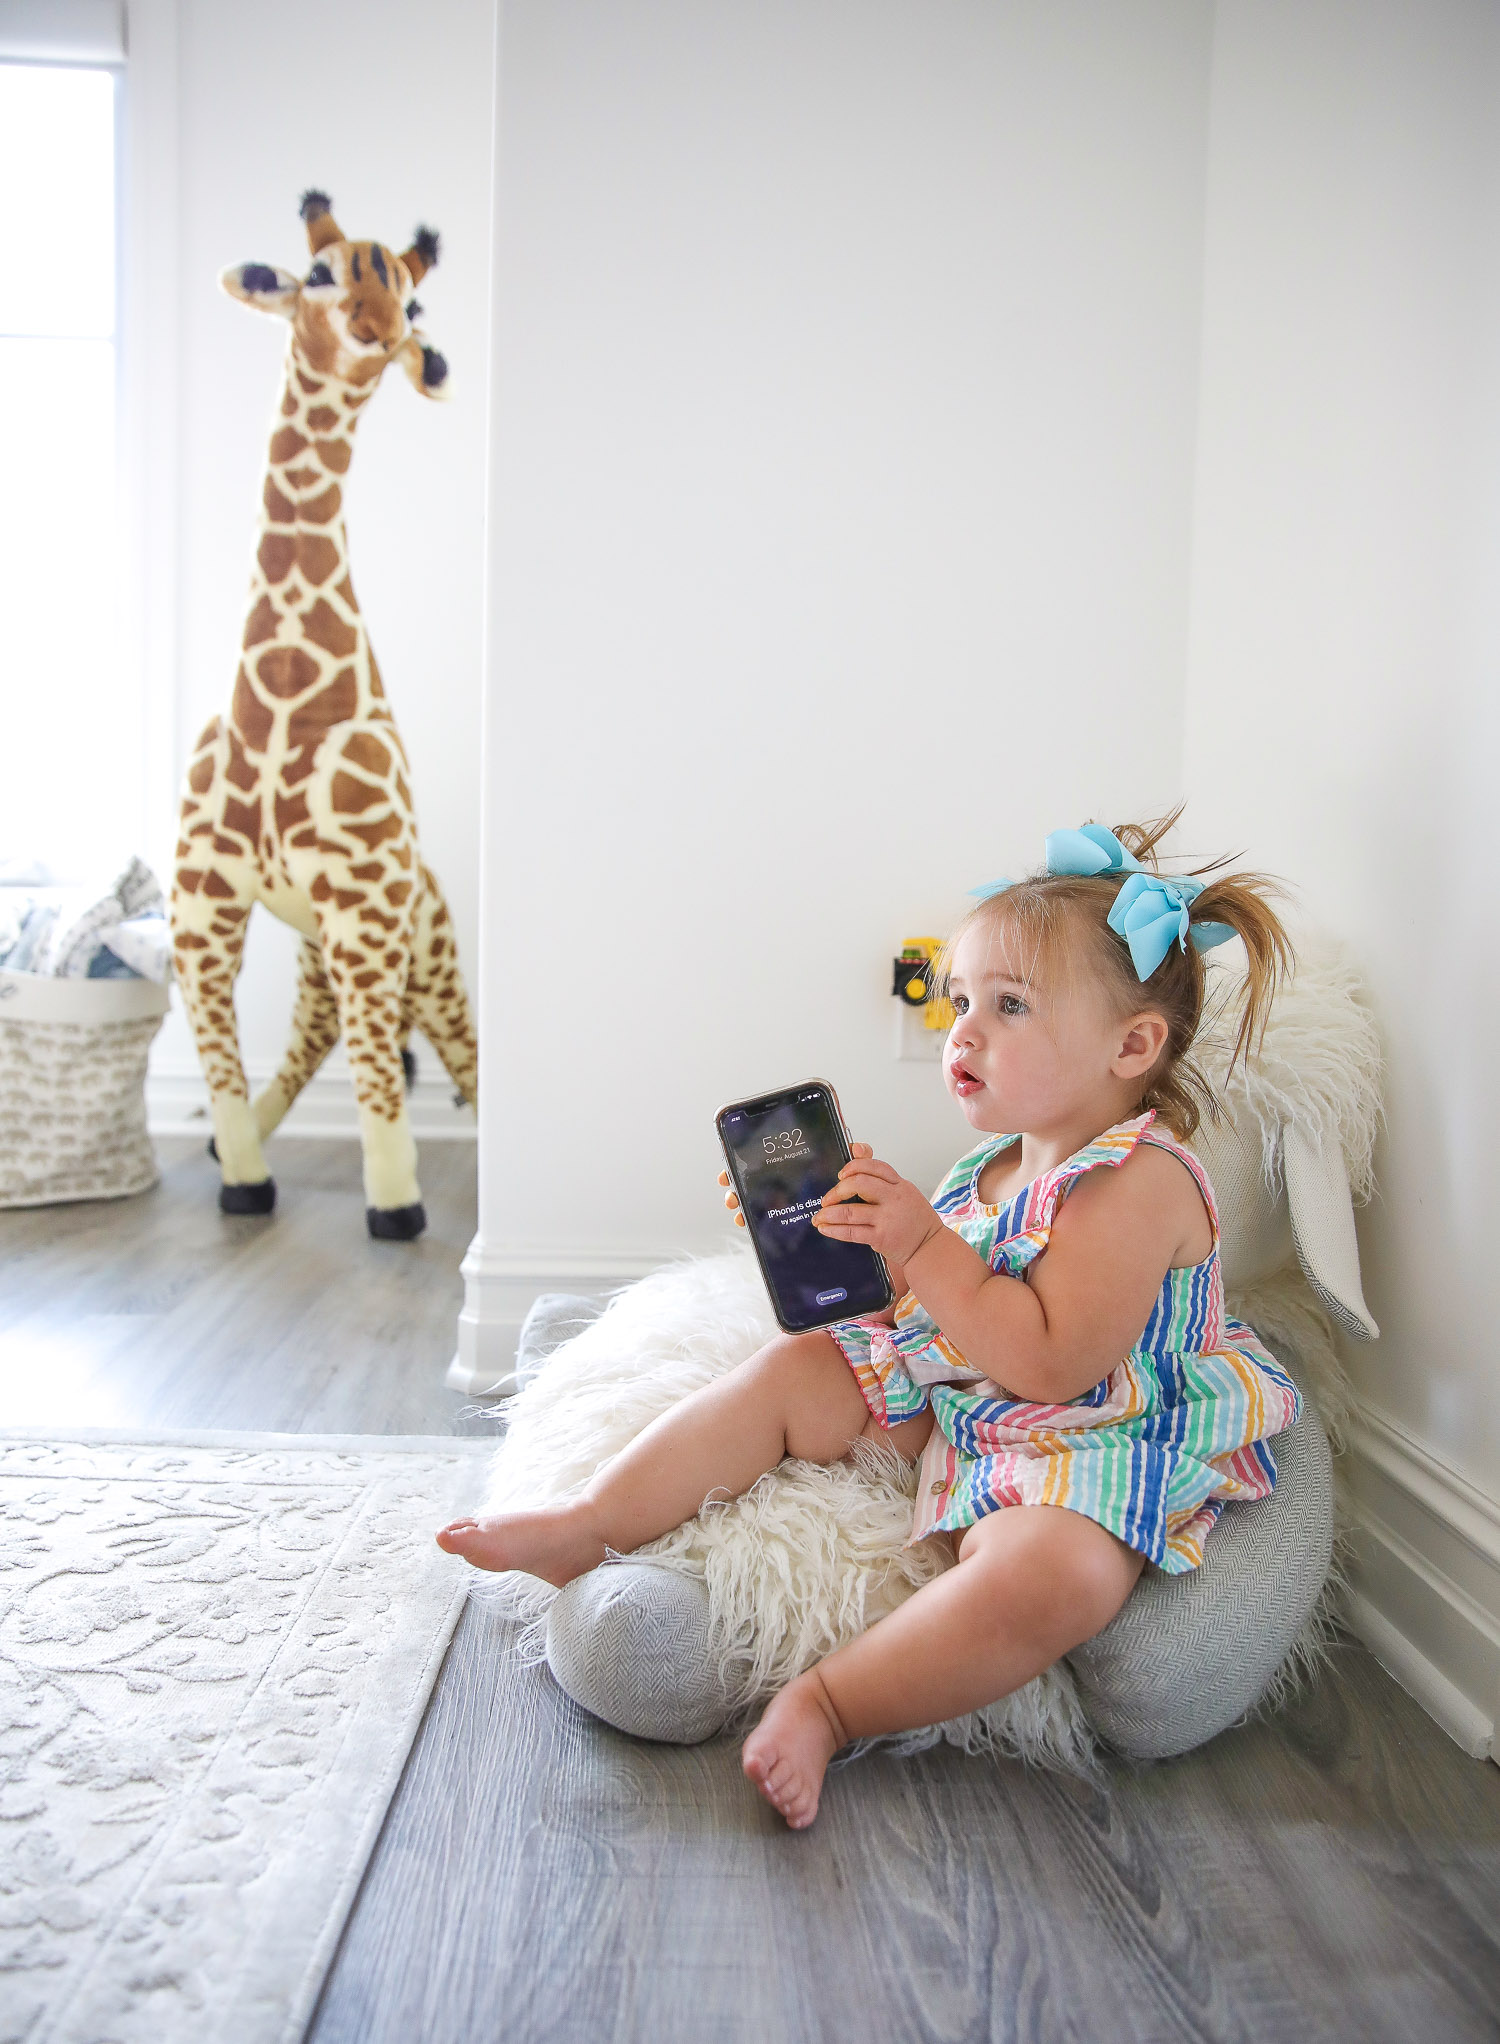 walmart kids home organization must haves, playroom organization ideas, emily gemma, the sweetest thing blog | Playroom Organization by popular US life and style blog, The Sweetest Thing: image of a little girl sitting on a floor pillow and holding a smartphone.